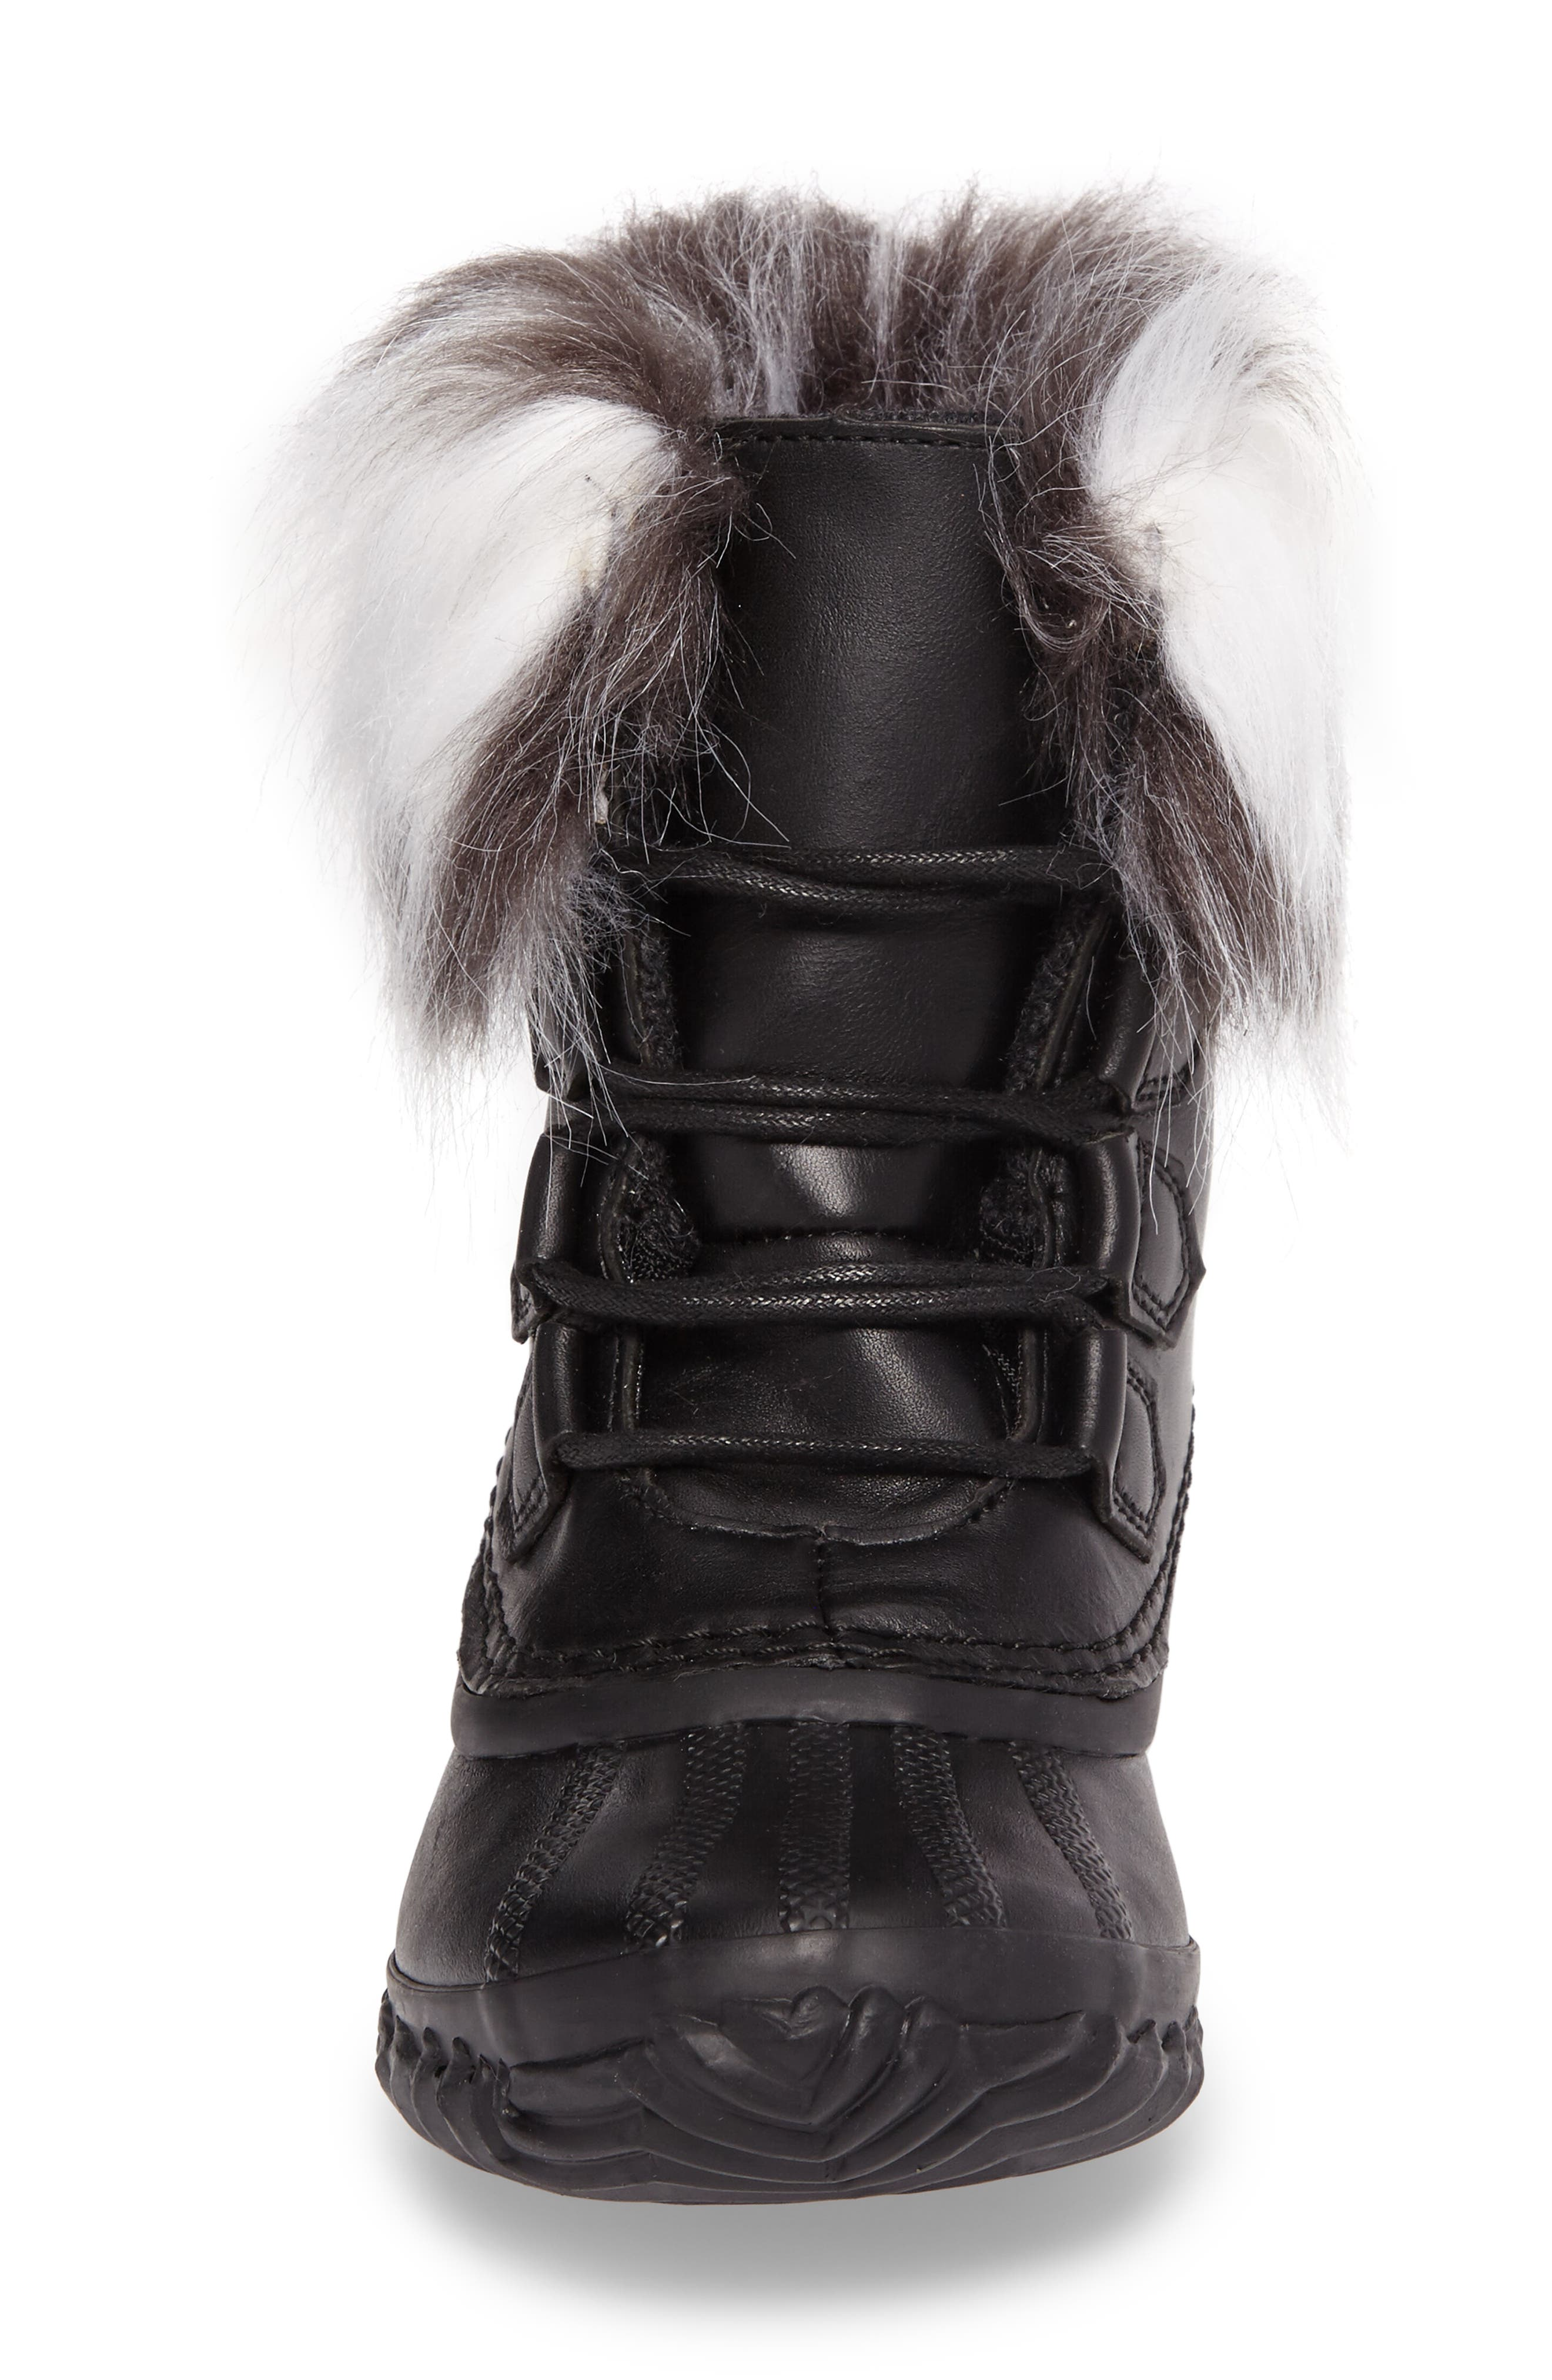 Out 'N About Waterproof Luxe Bootie,                             Alternate thumbnail 4, color,                             Black/ Sea Salt